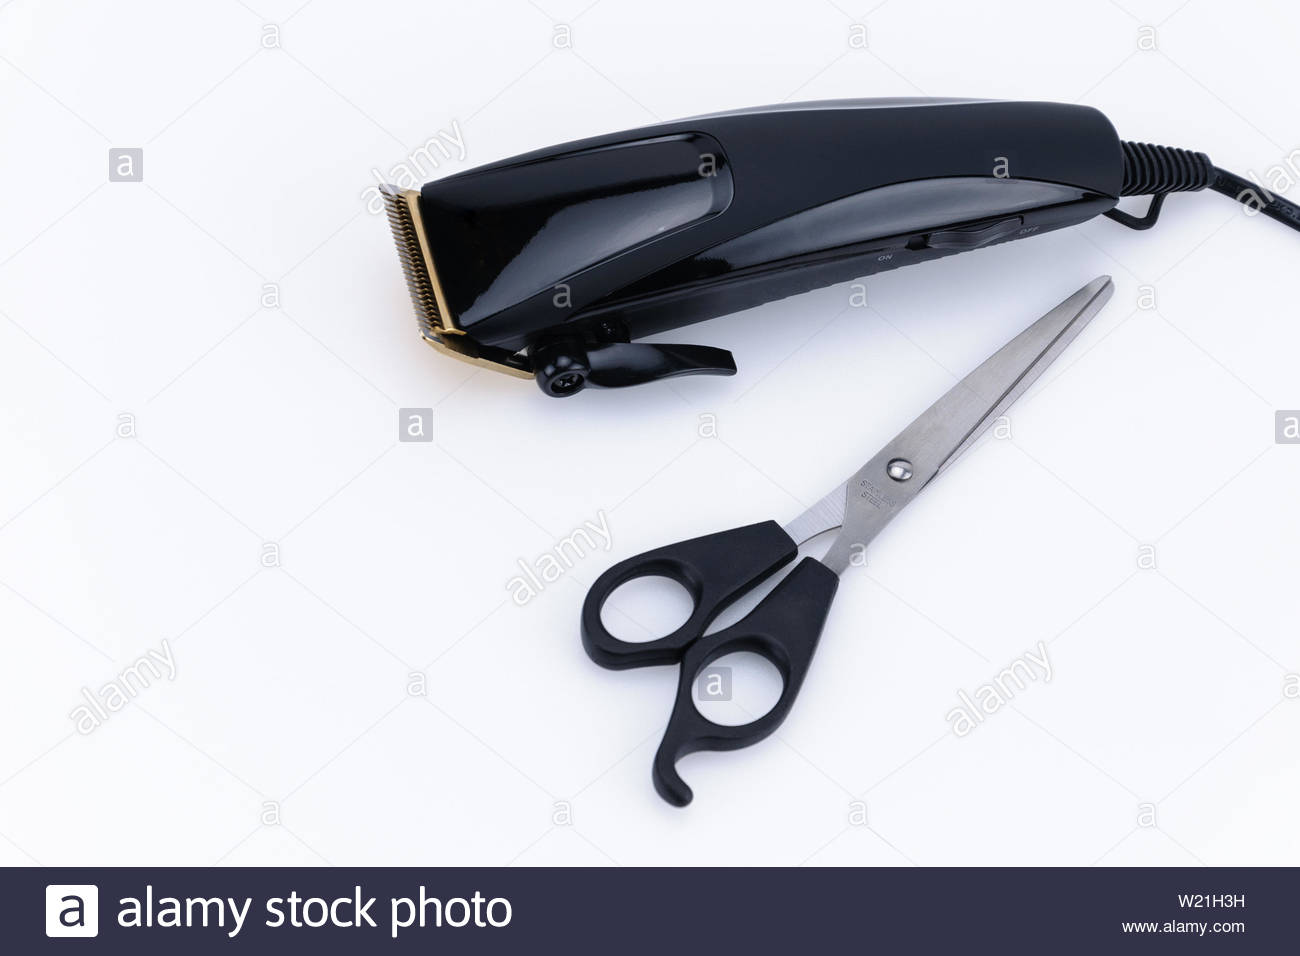 Close up of Electric hand-held hair clipper with accessory  for hair salon or barber shop on the white background with copy space - Stock Image